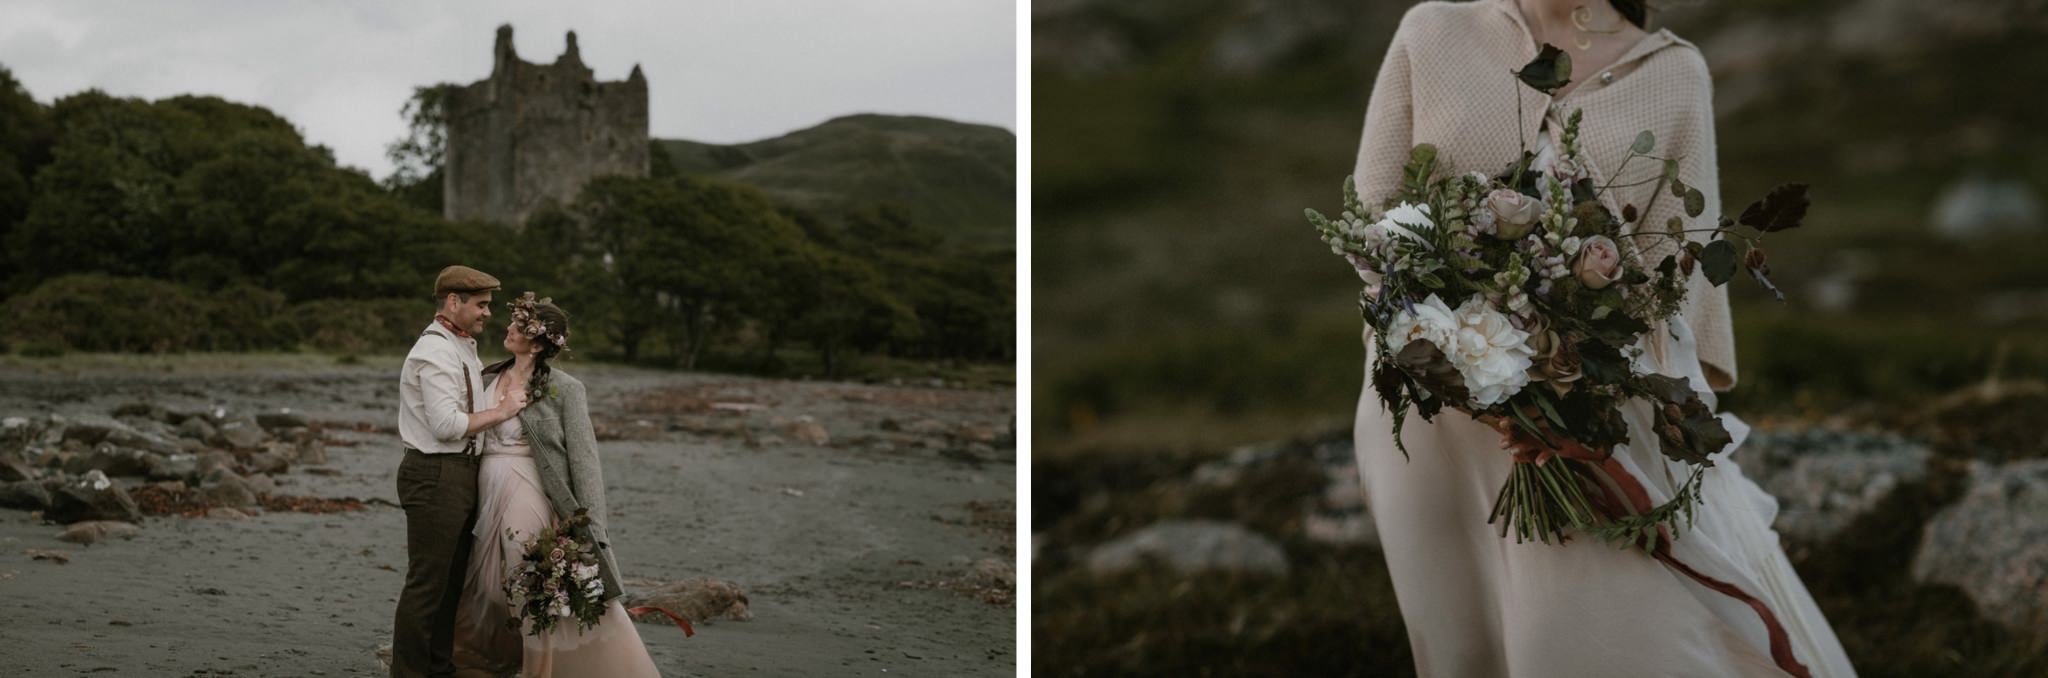 Where to elope in Scotland Isle of Mull elopement photography